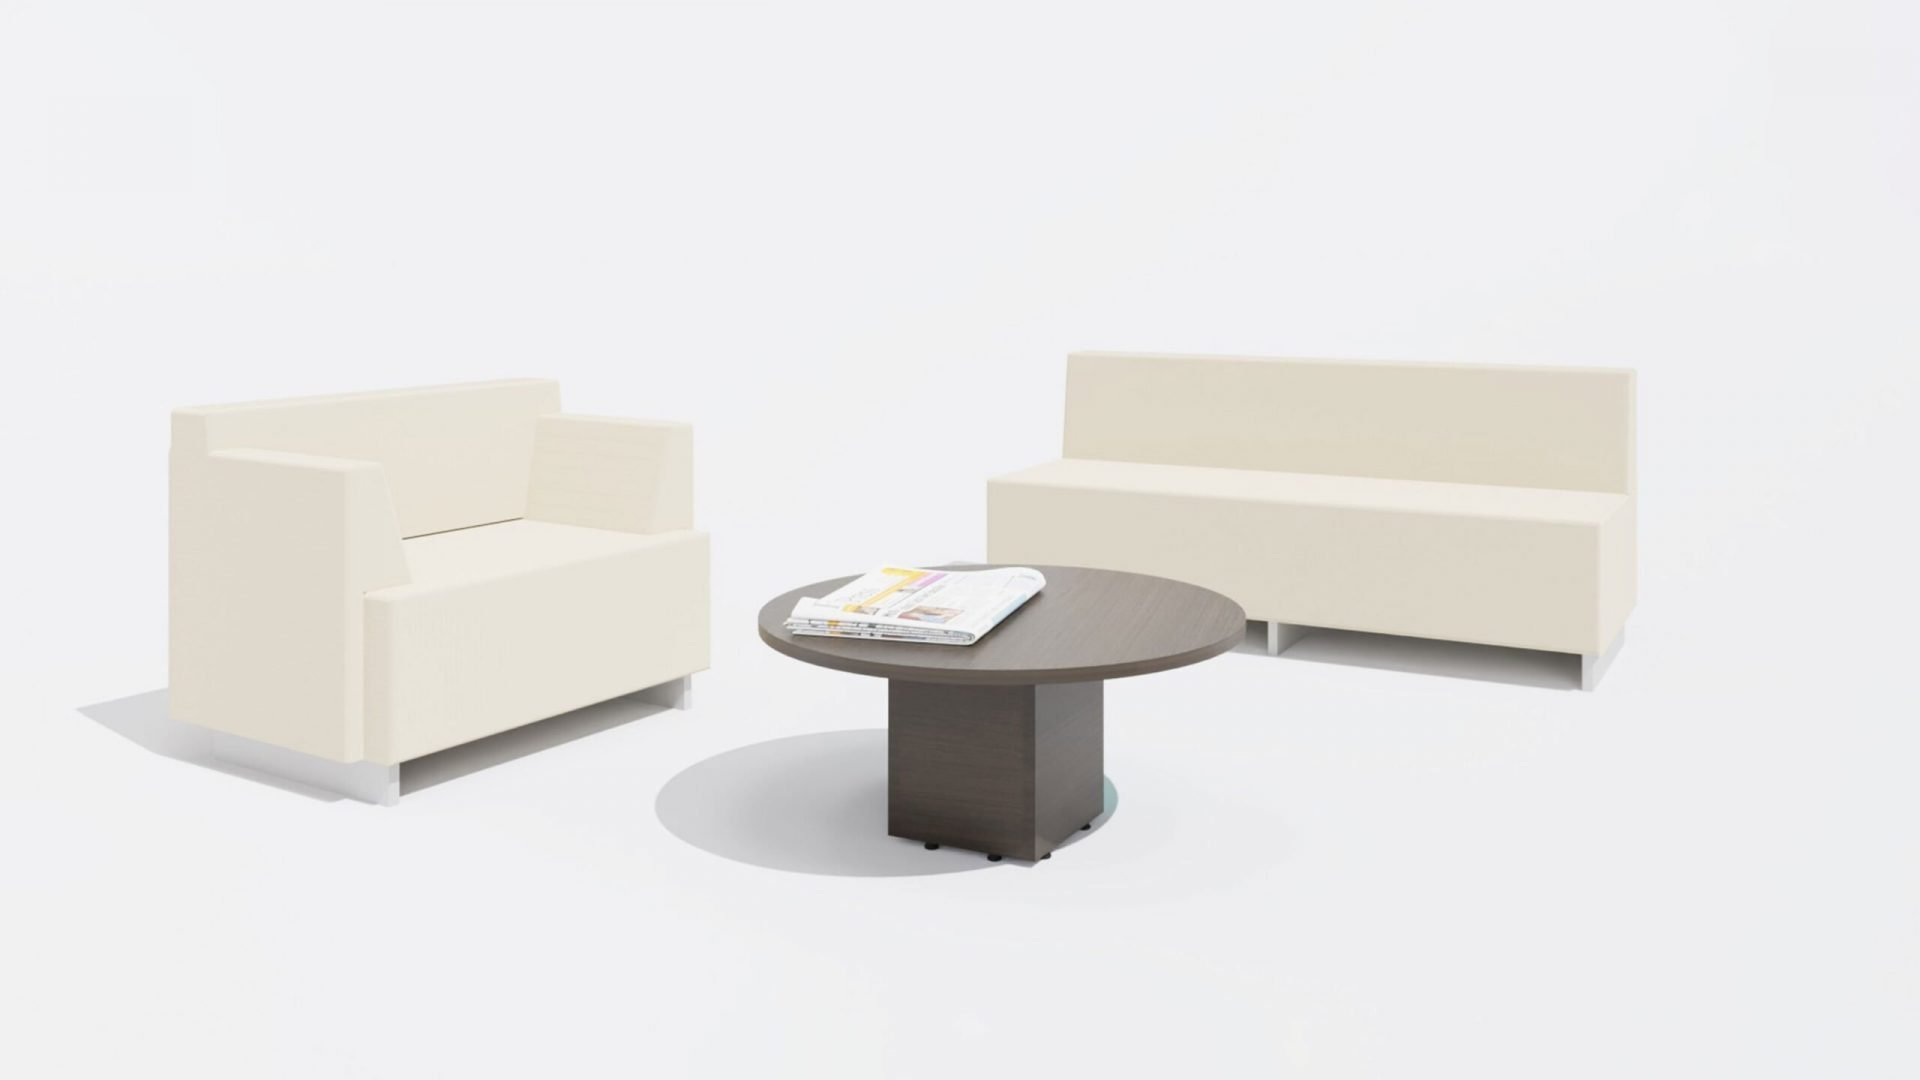 Round Coffee Table 1649 with Sofa